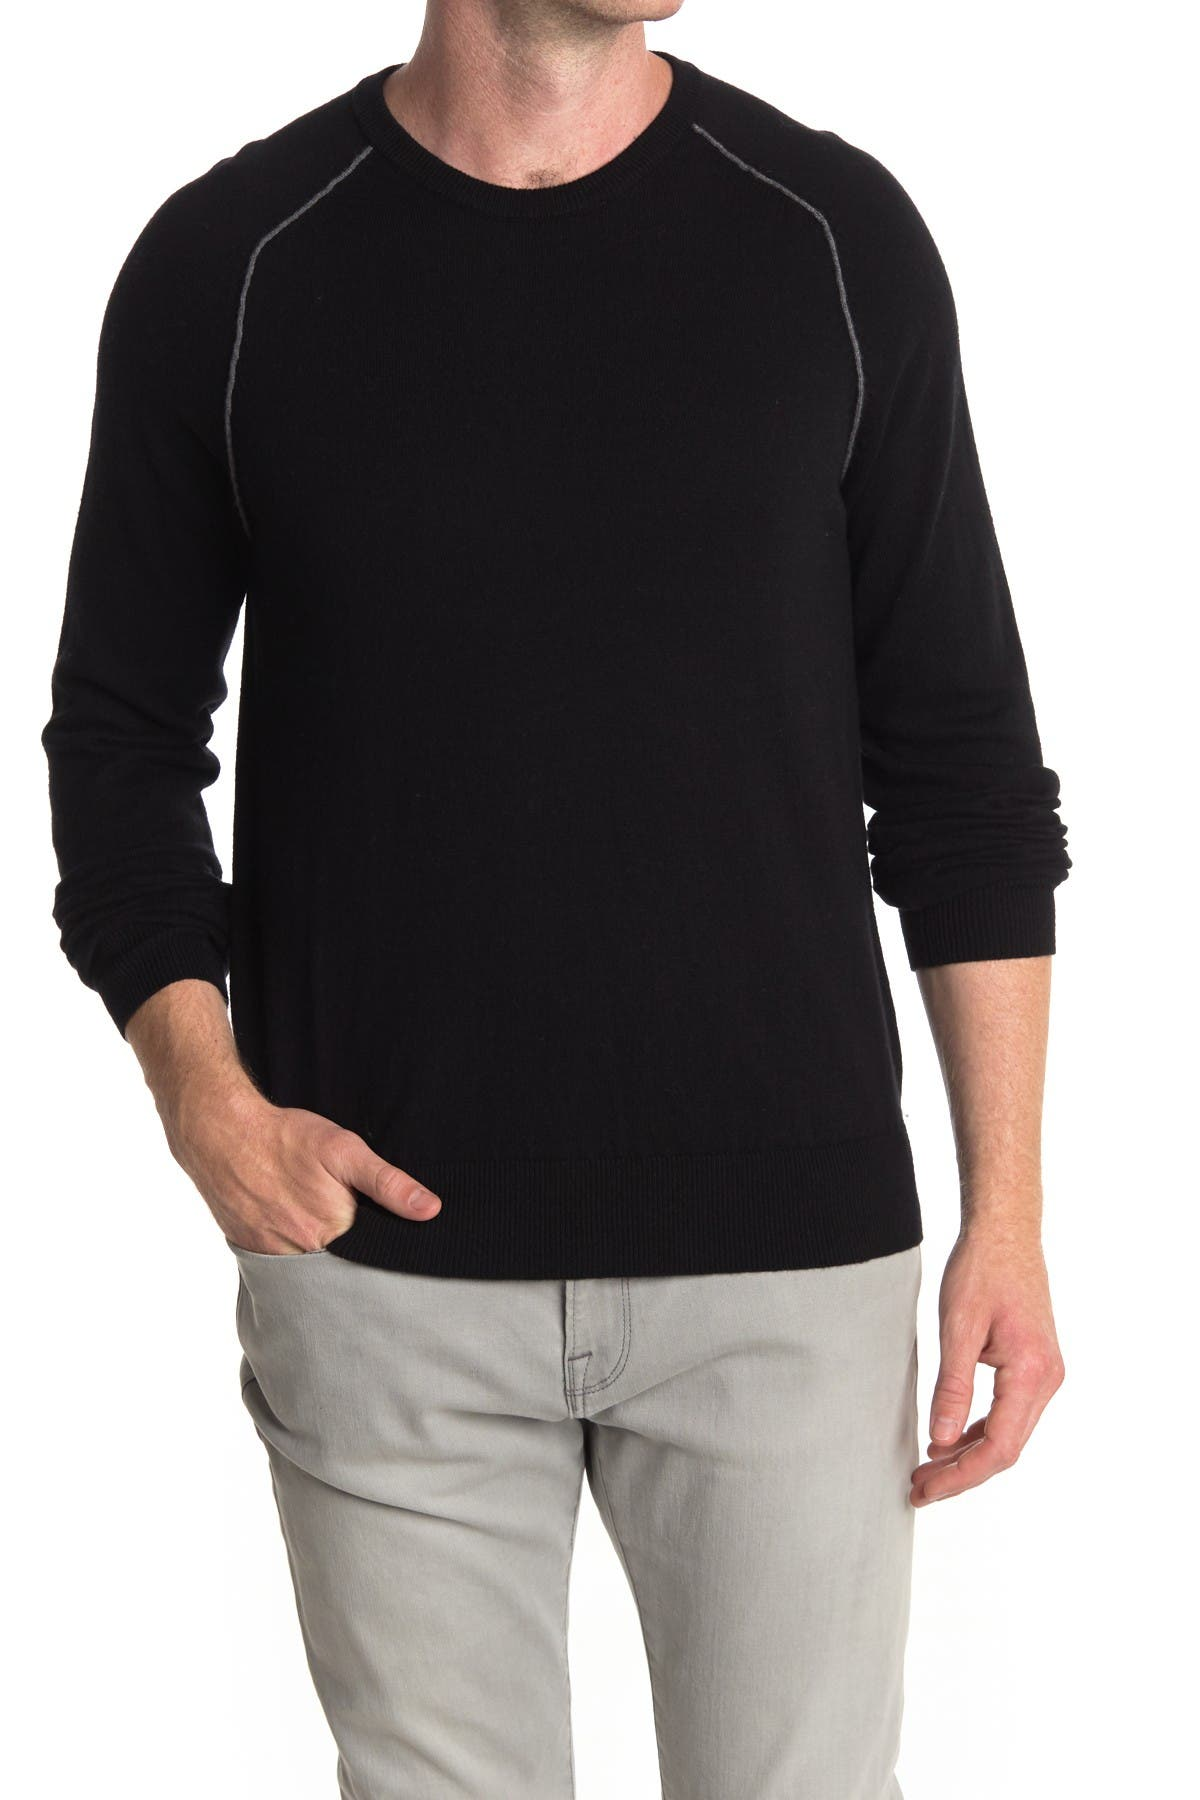 Image of AMICALE Cotton Cashmere Blend Pullover Sweater